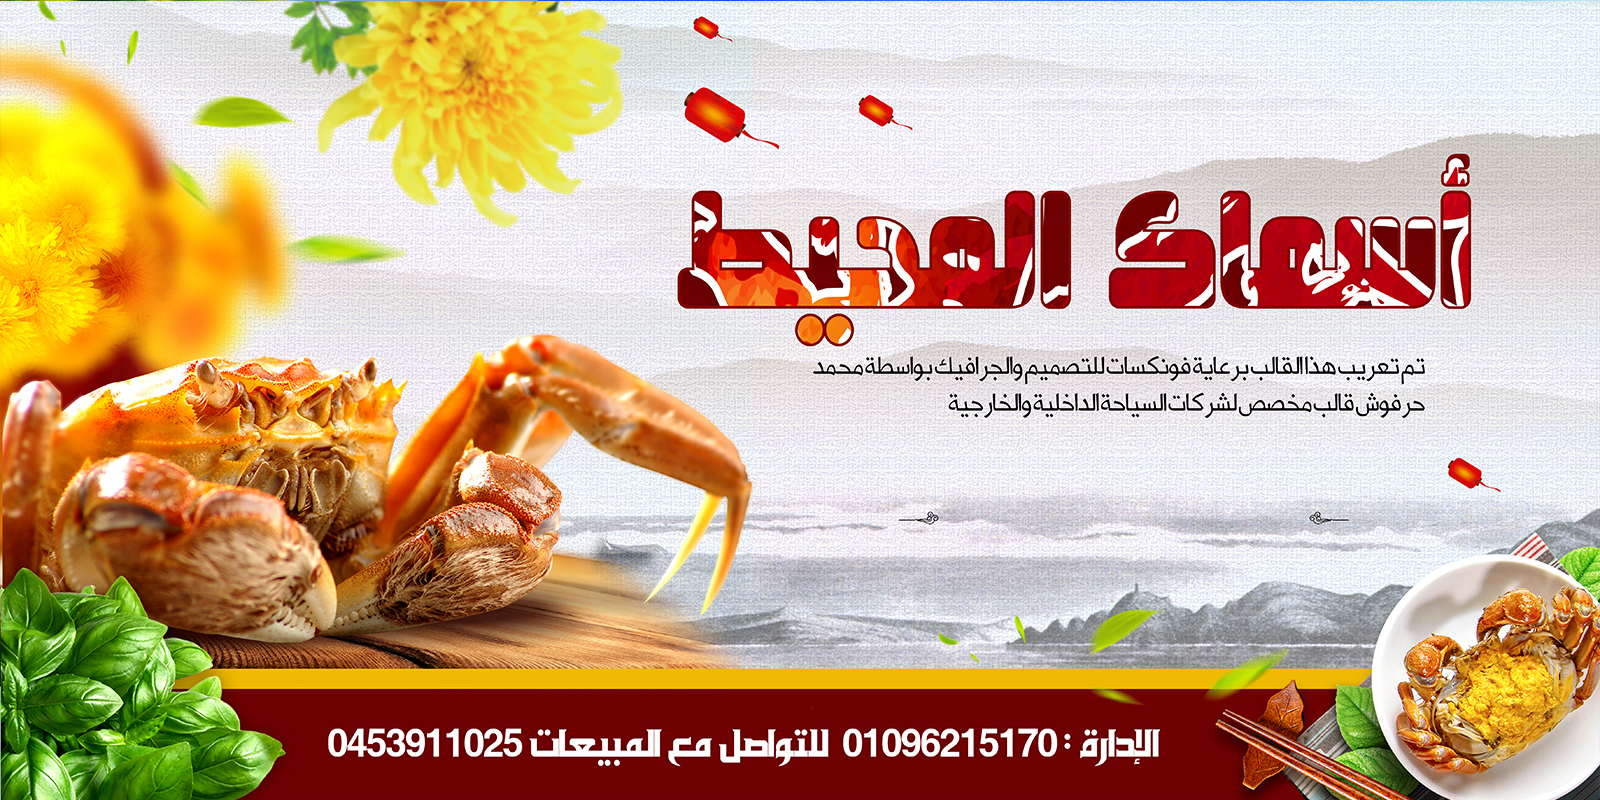 A special design for fish and marine stores, a large banner that can be used as a print or web banner with modification of sizes